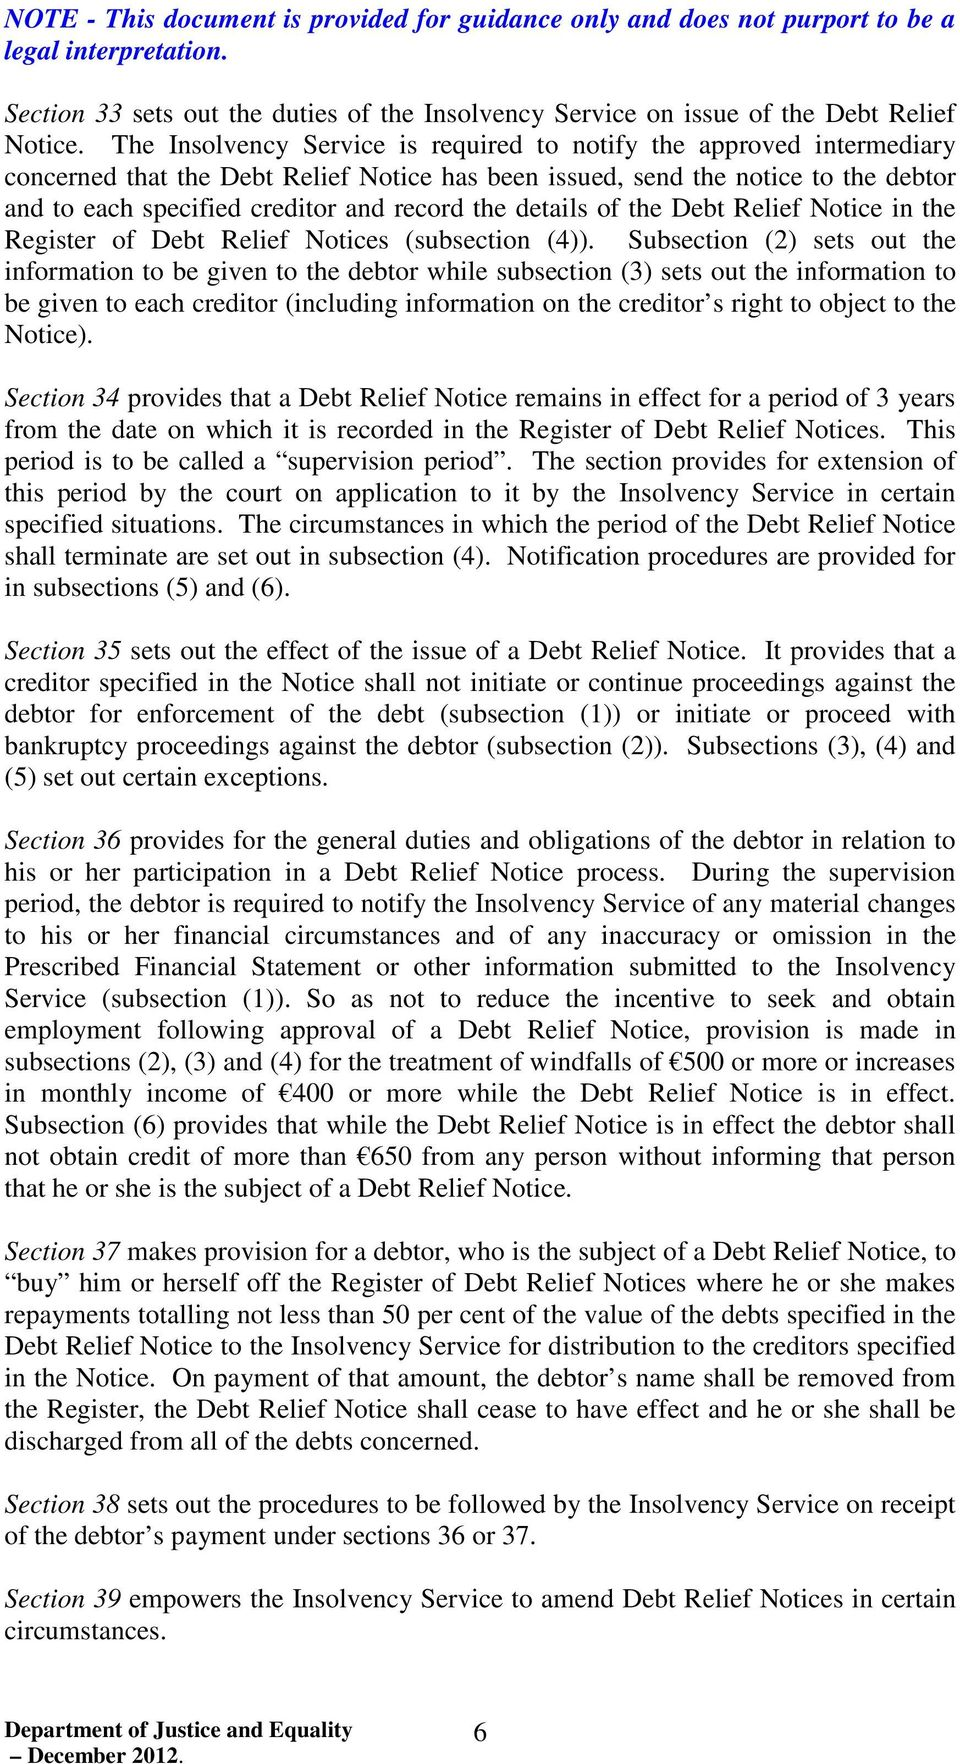 the details of the Debt Relief Notice in the Register of Debt Relief Notices (subsection (4)).